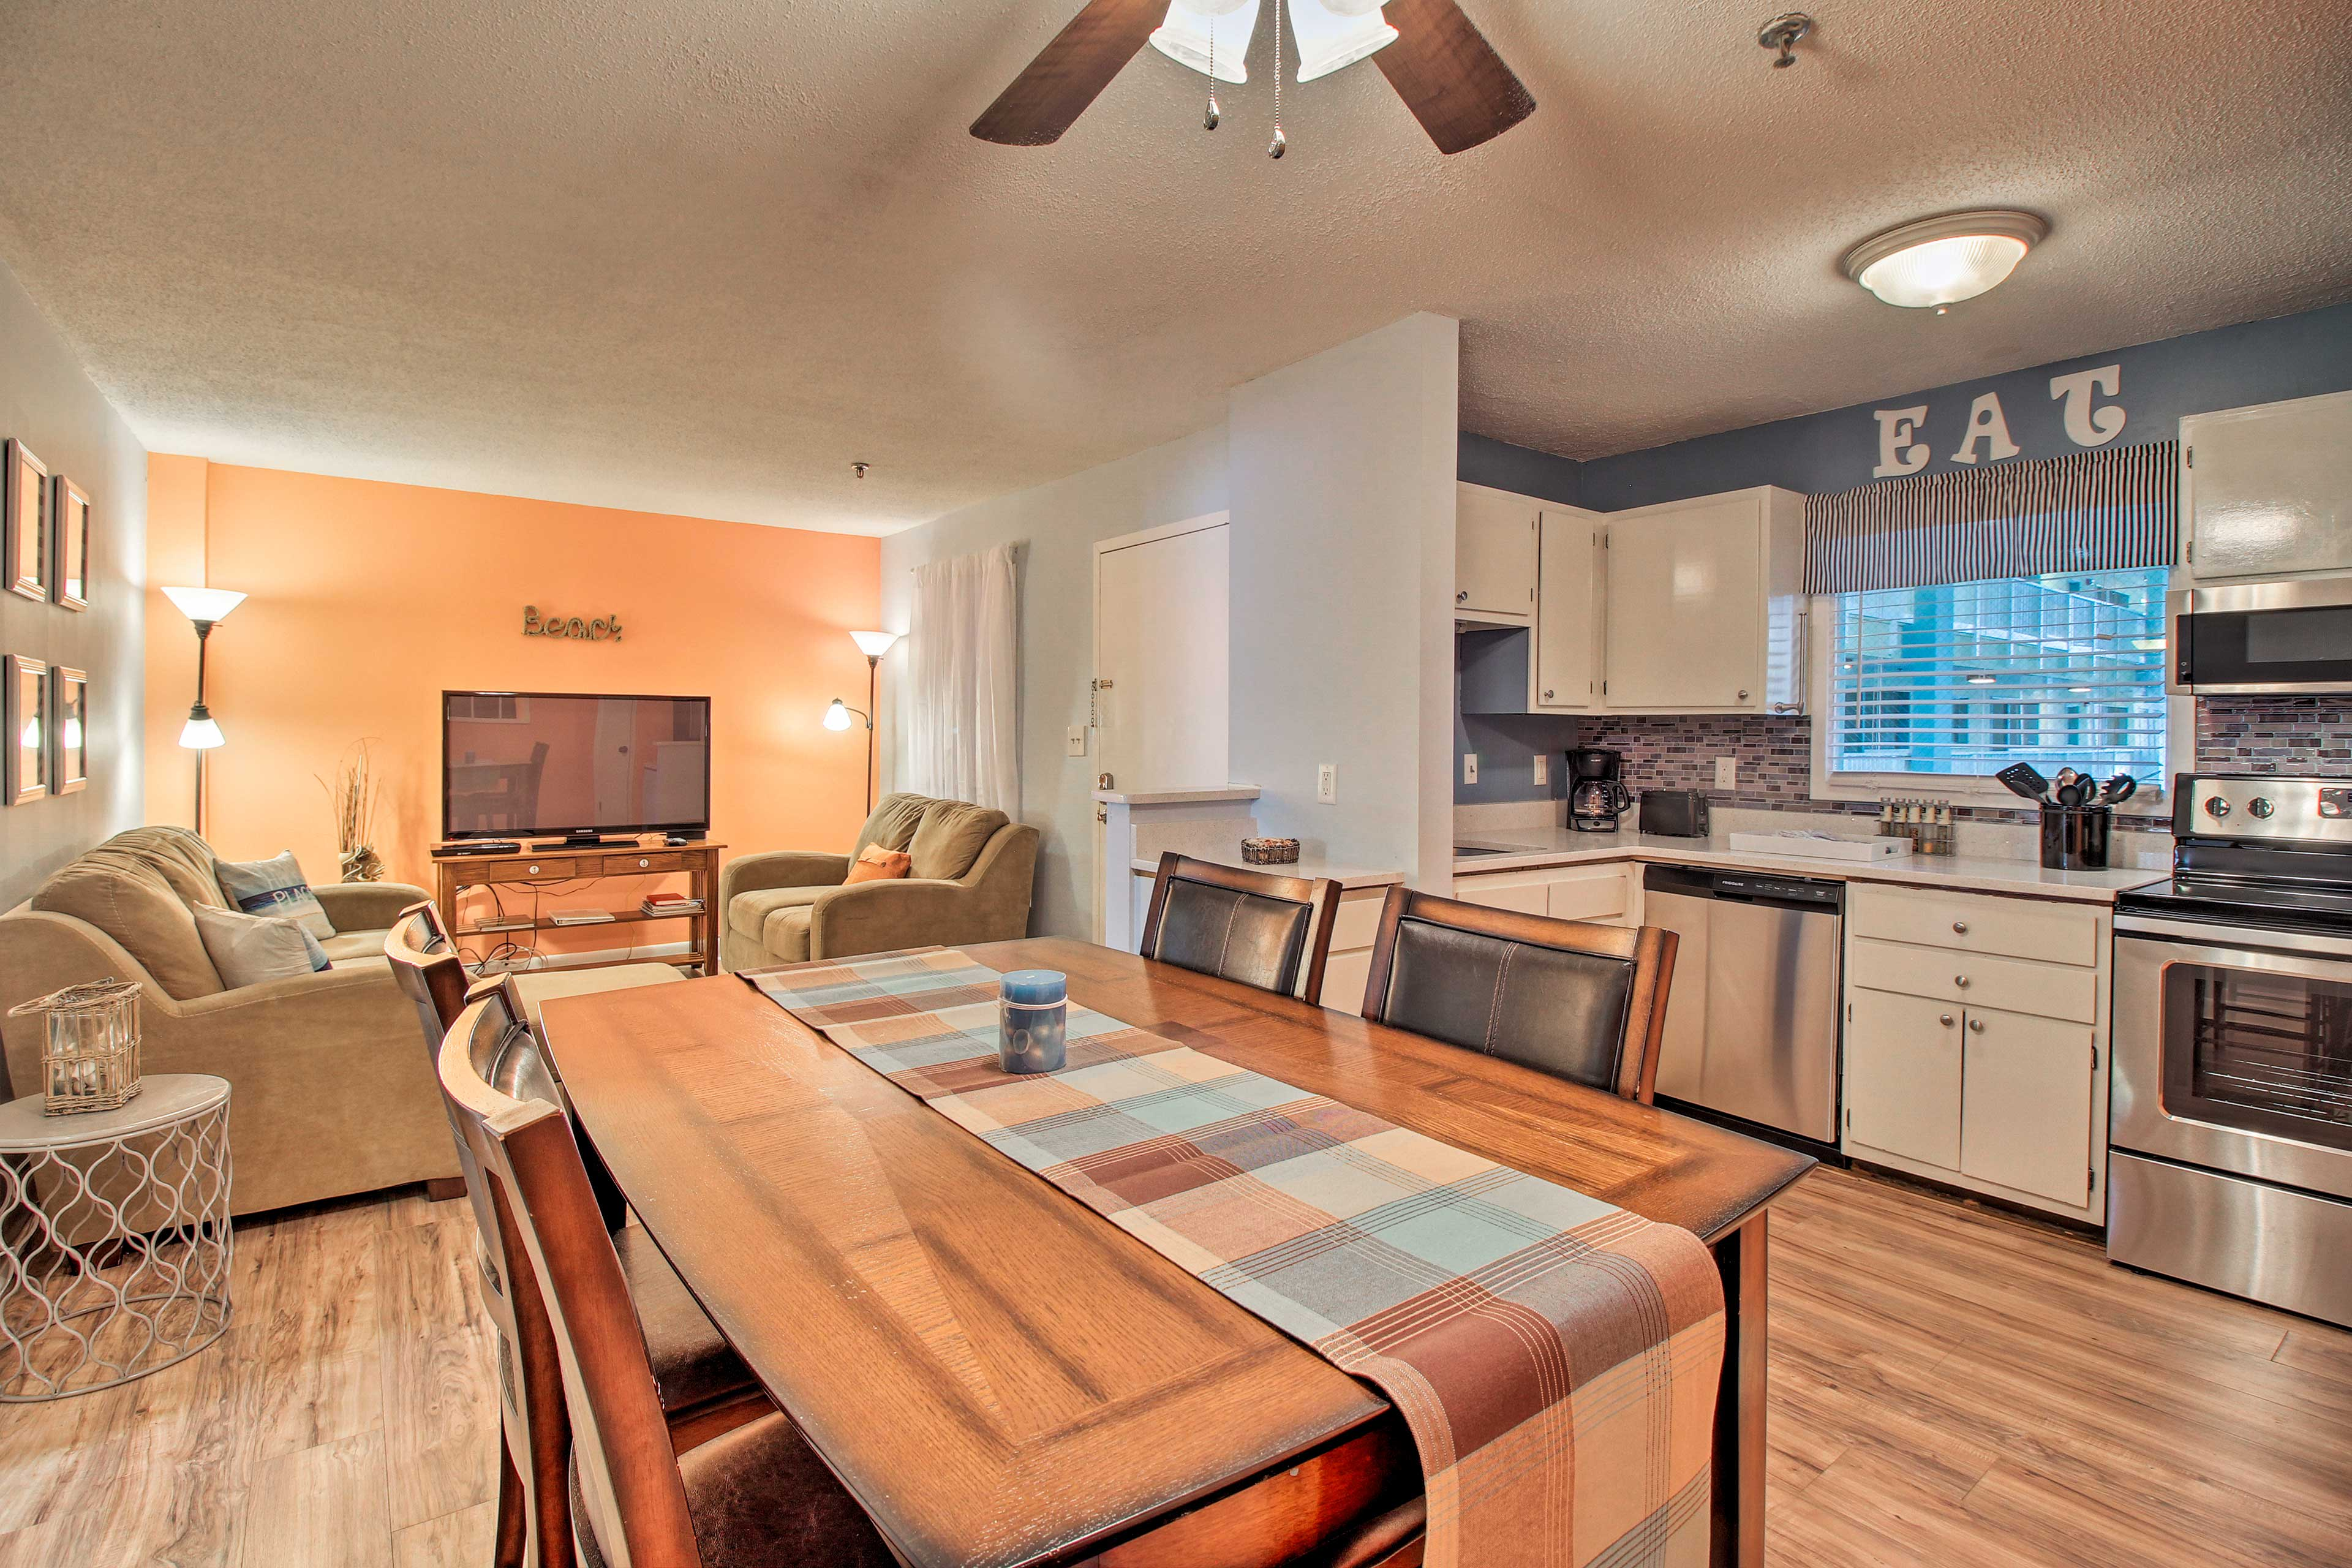 You'll feel right at home as you relax inside this cozy condo.